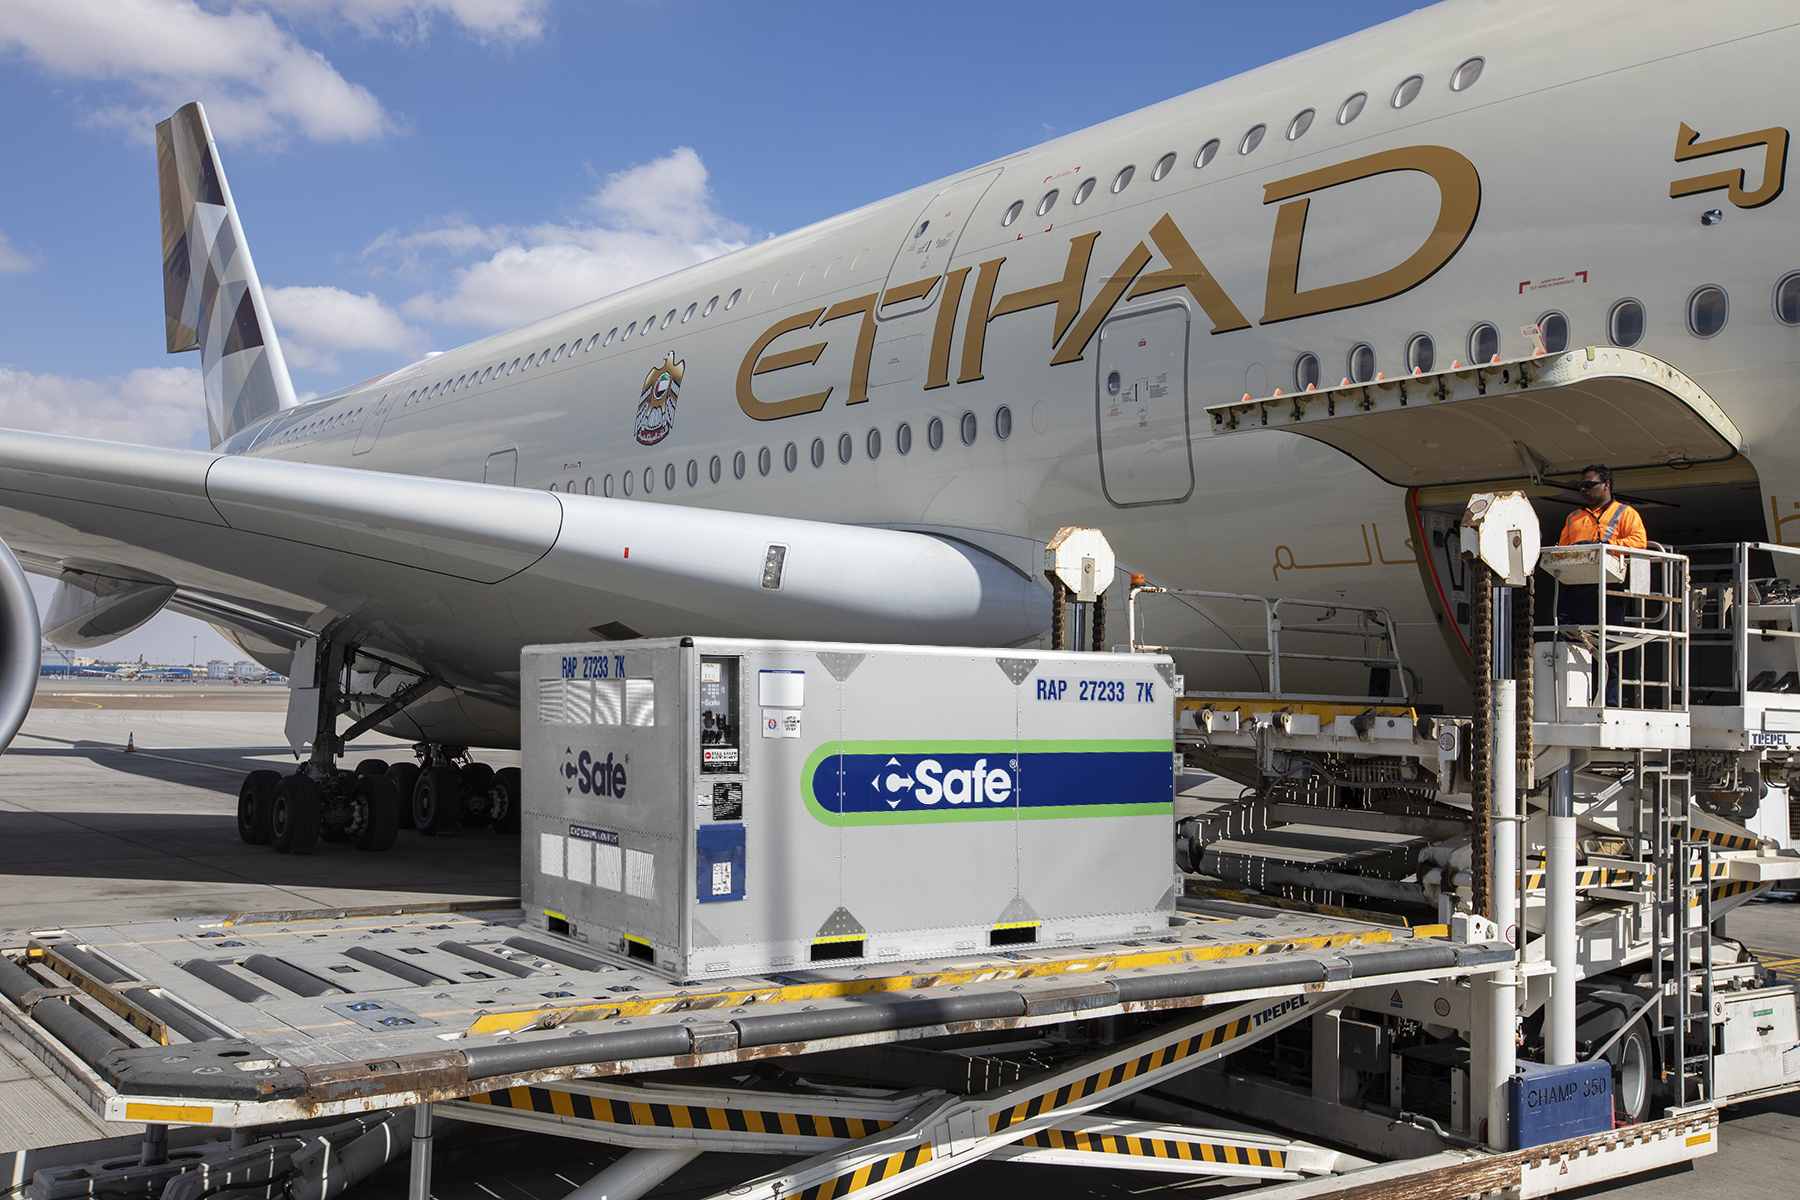 CSafe RAP being loaded onto Etihad aircraft